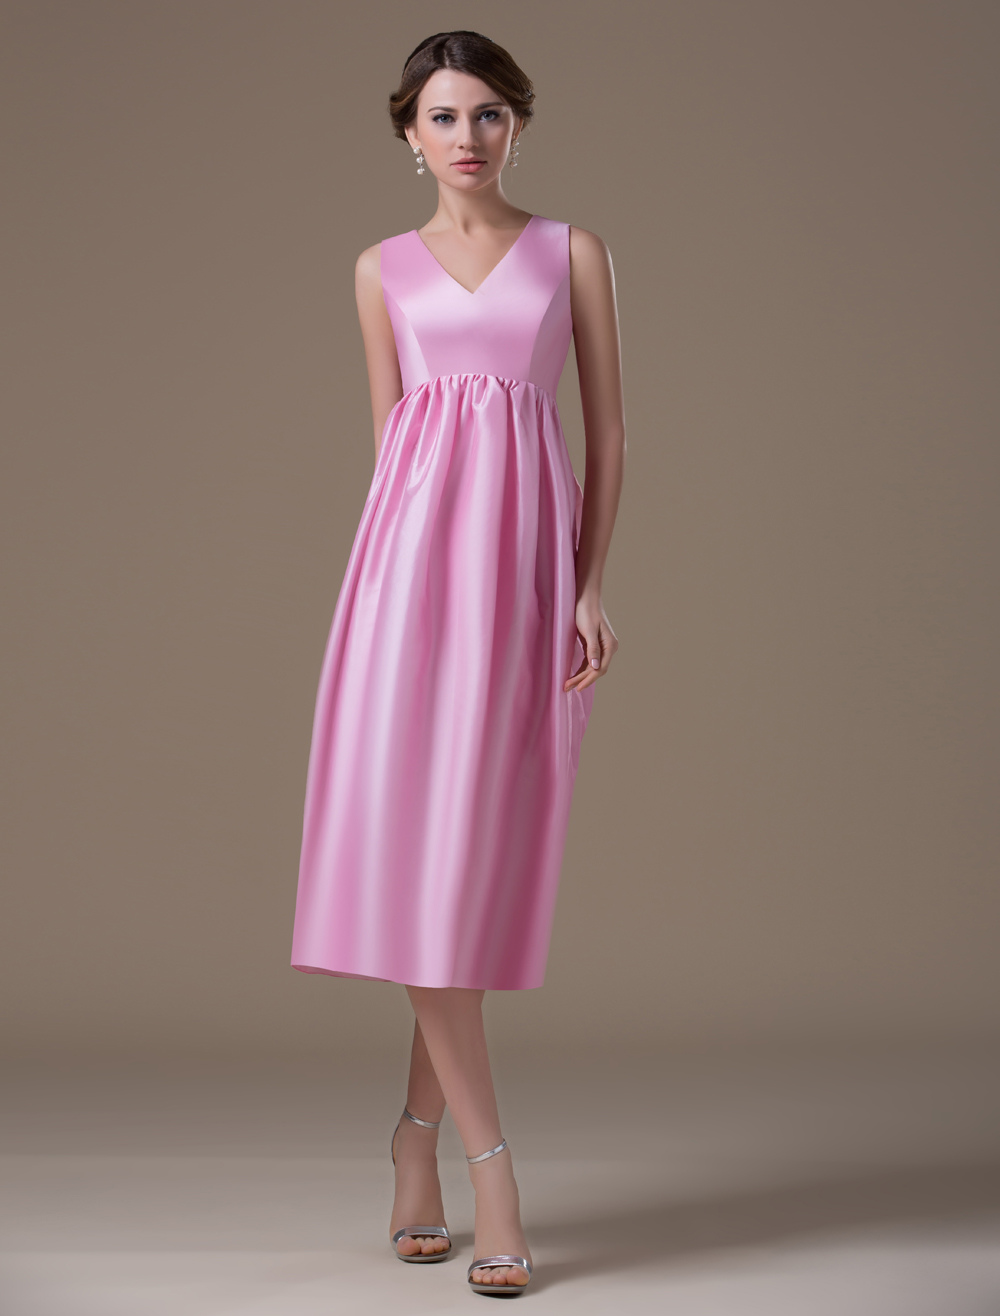 Sweet Pink Taffeta V-neck Tea Length Maternity Bridesmaid Dress